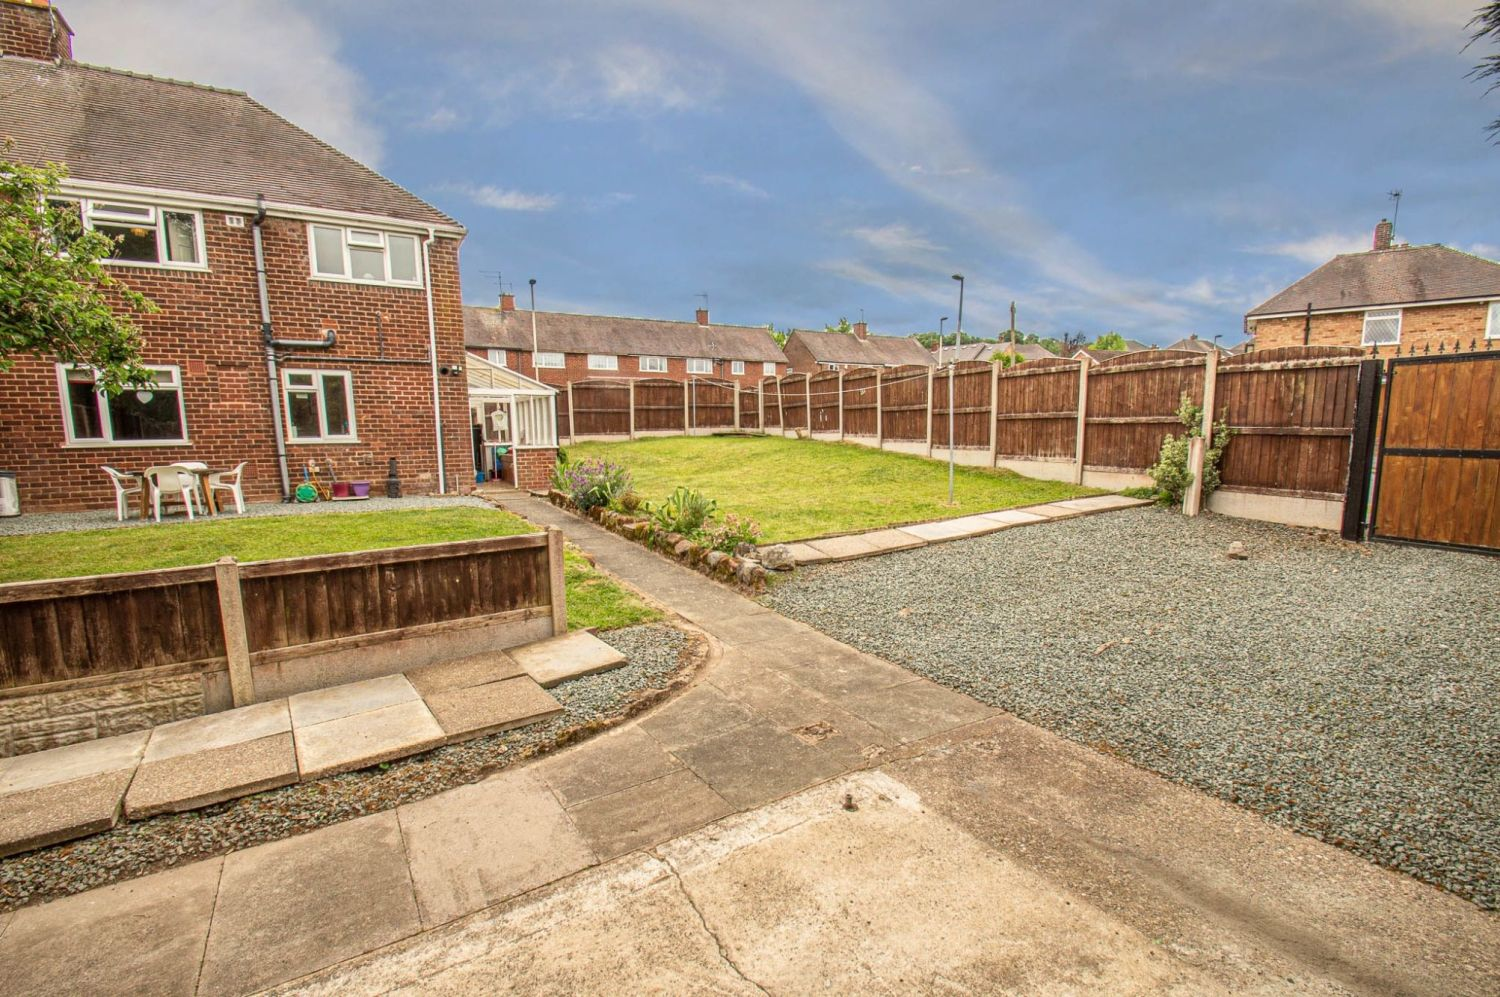 3 bed semi-detached for sale in Gauden Road, Wollescote  - Property Image 11